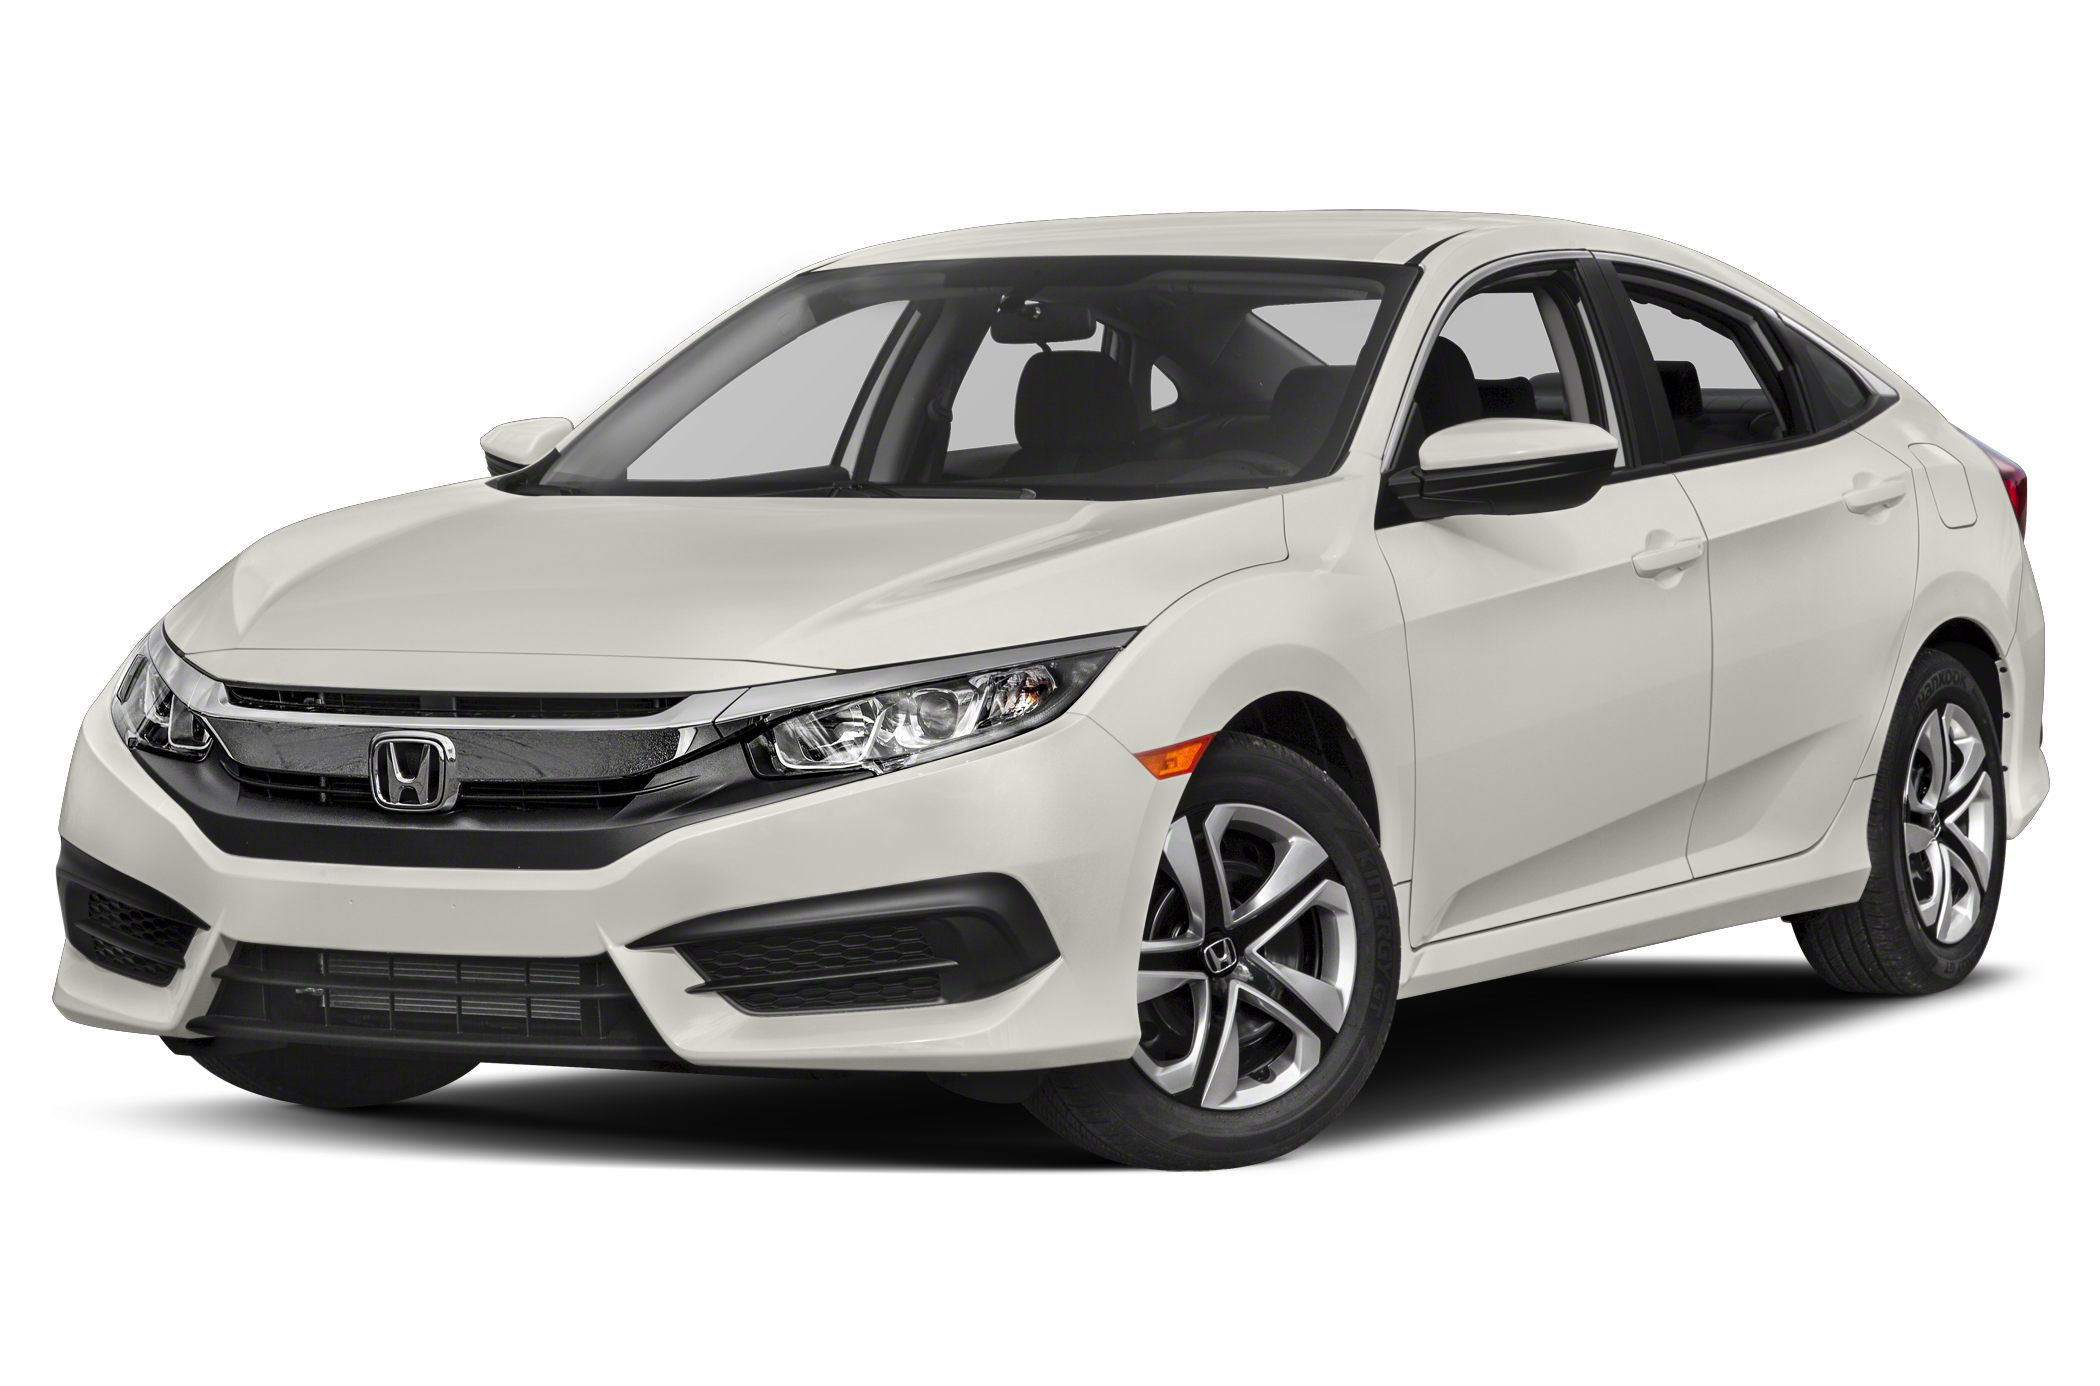 2016 honda civic coupe first drive autoblog for Honda civic com